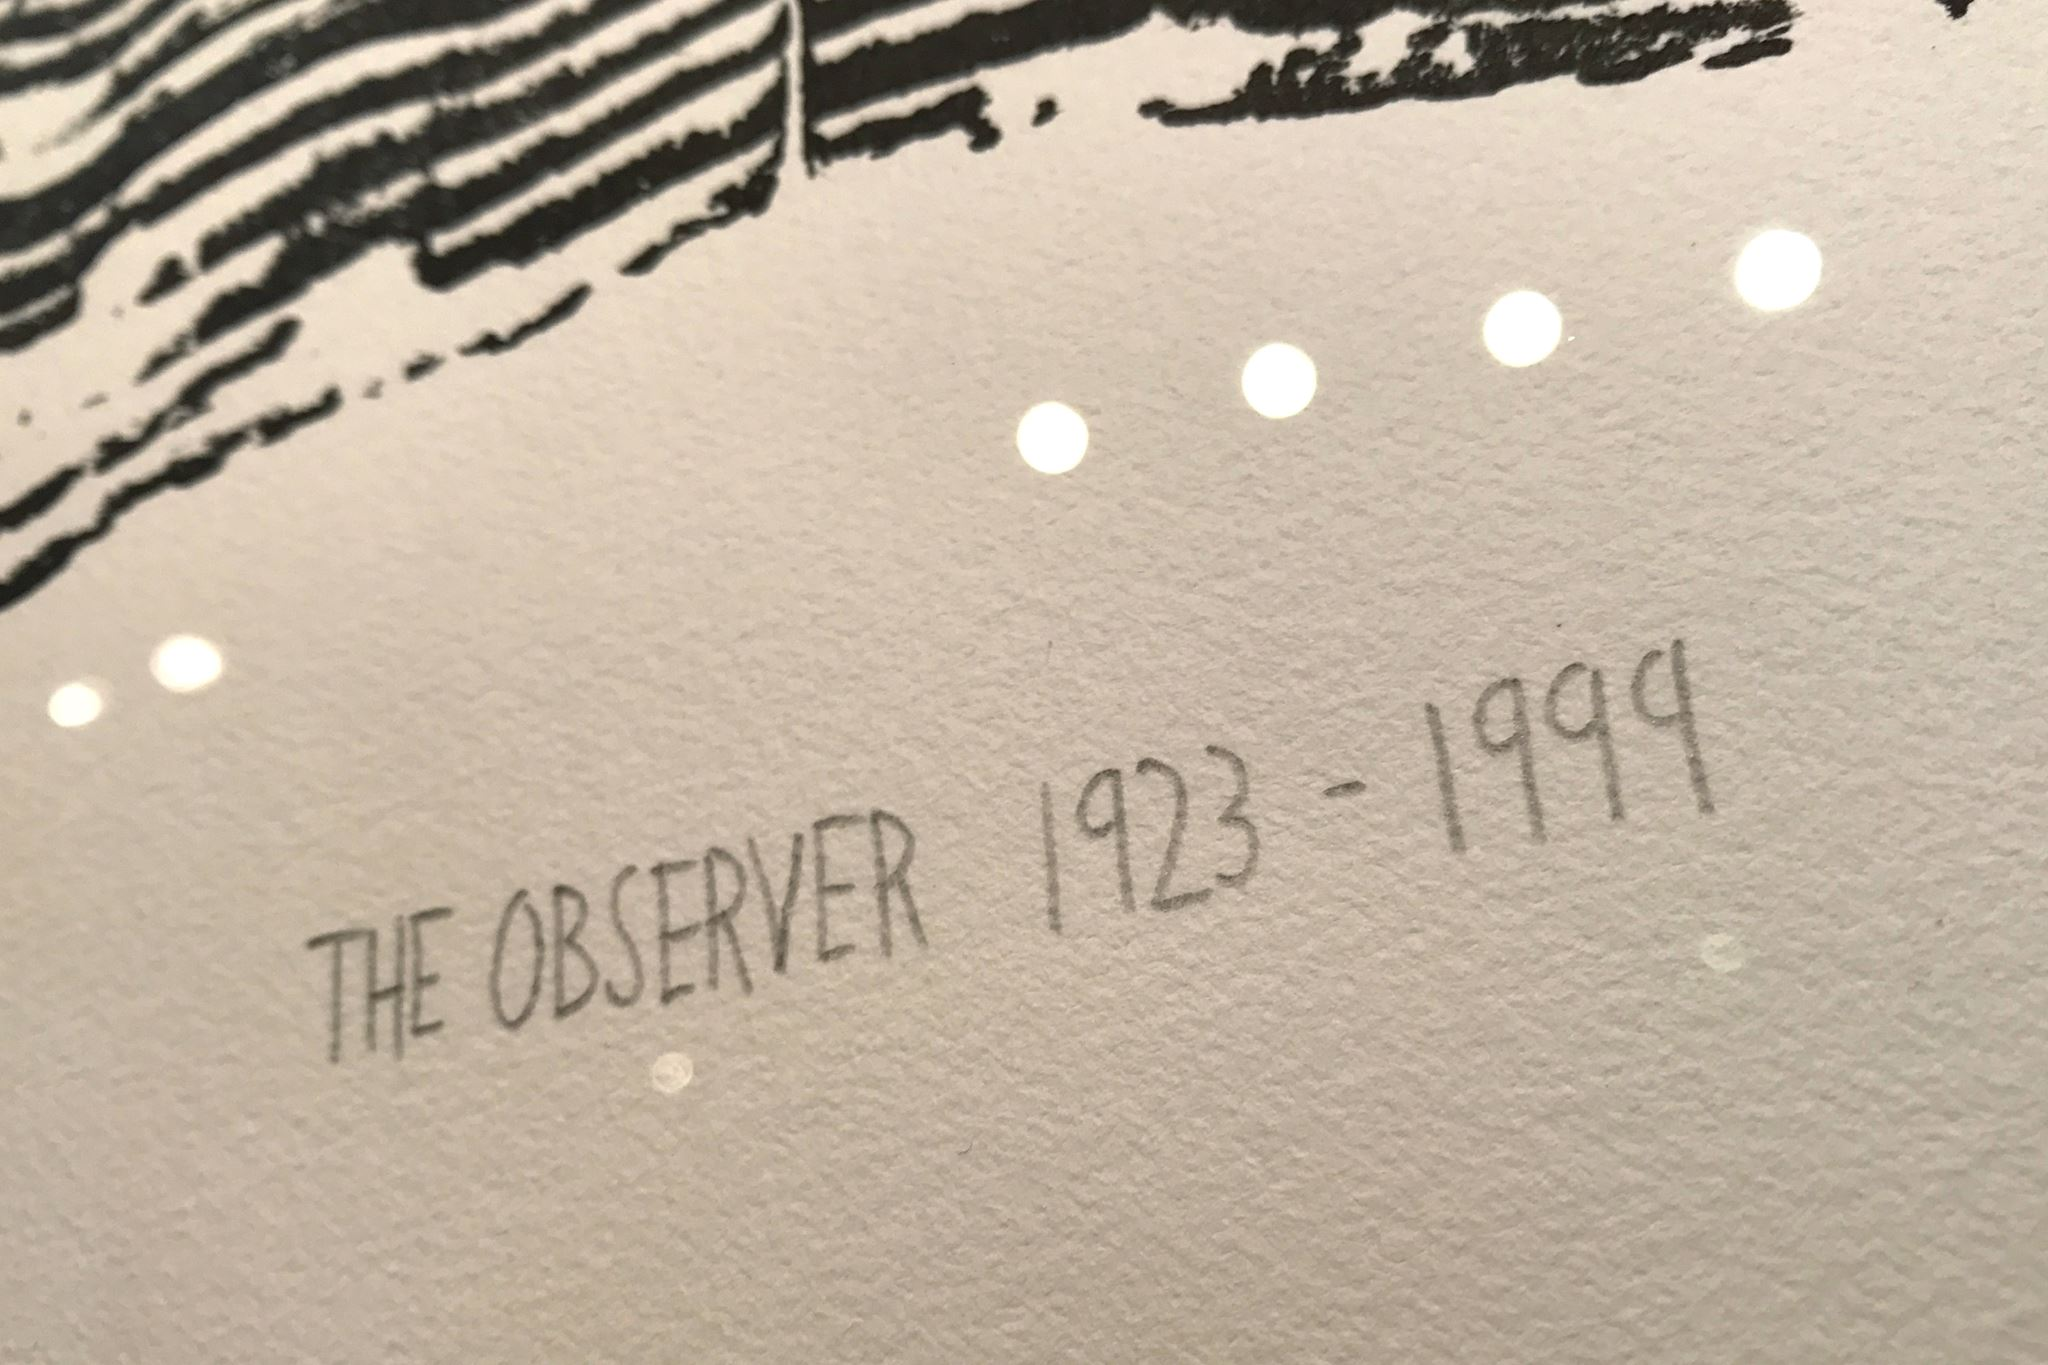 Alternative image for The Observer 1923-1999